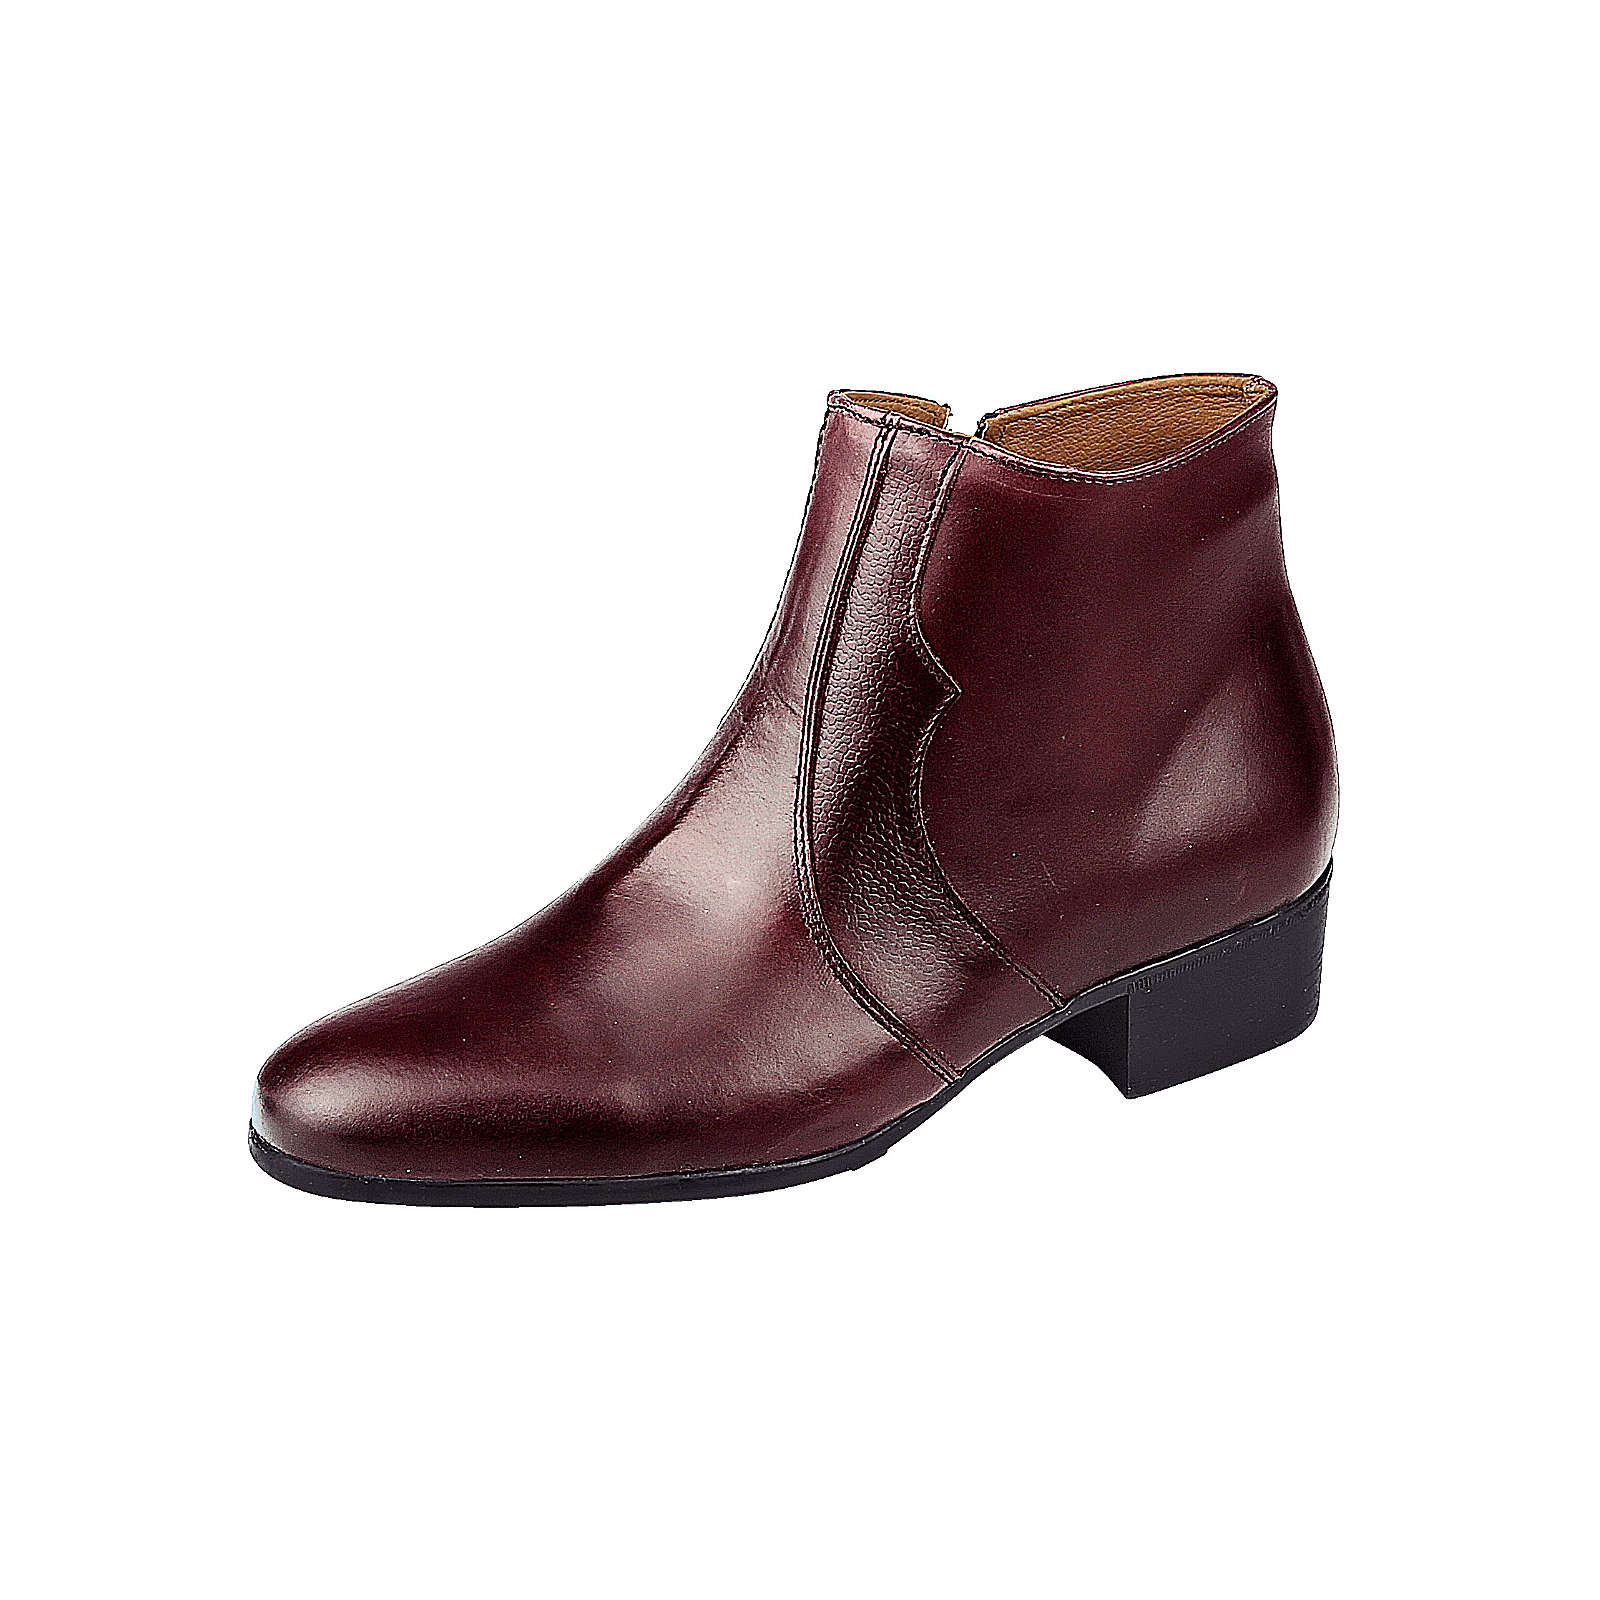 SoftWalk Stiefeletten bordeaux Herren Gr. 42